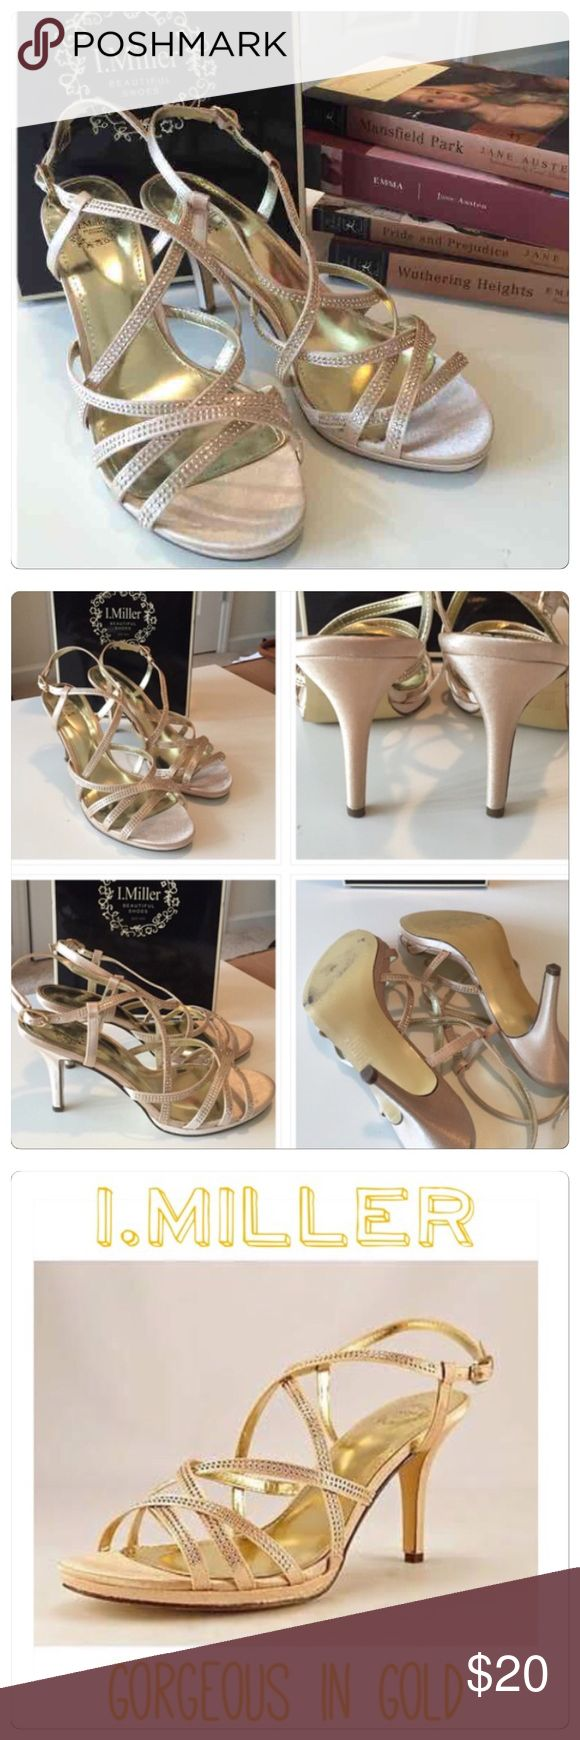 """I. Miller Sexy Gold Sandals / Heels ✨Gorgeous in Gold """"Bacall"""" strappy sandal/heel. Make an impression with these beauties. Bought for a wedding I was in, wore for less than two hours and put on flats lol. Heels kill me. Shoe itself is flawless, and just some wear on sole from walking on pavement. Still retail at 60. So great deal here, I will stick to my flats lol. Enjoy.✨gold is a nicer lighter gold than they show in Google photos. 3 1/2"""" heel. I. Miller Shoes Heels"""